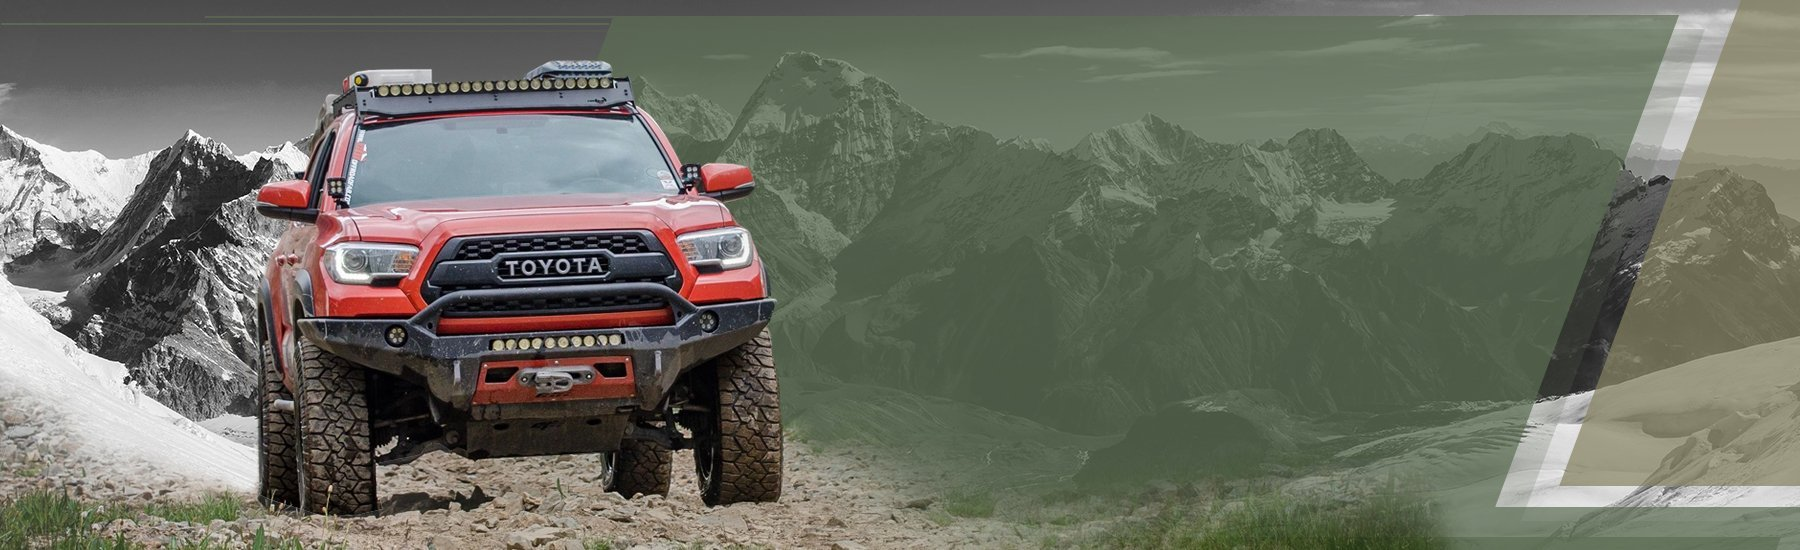 Toyota Gear For Off-Road Enthusiasts